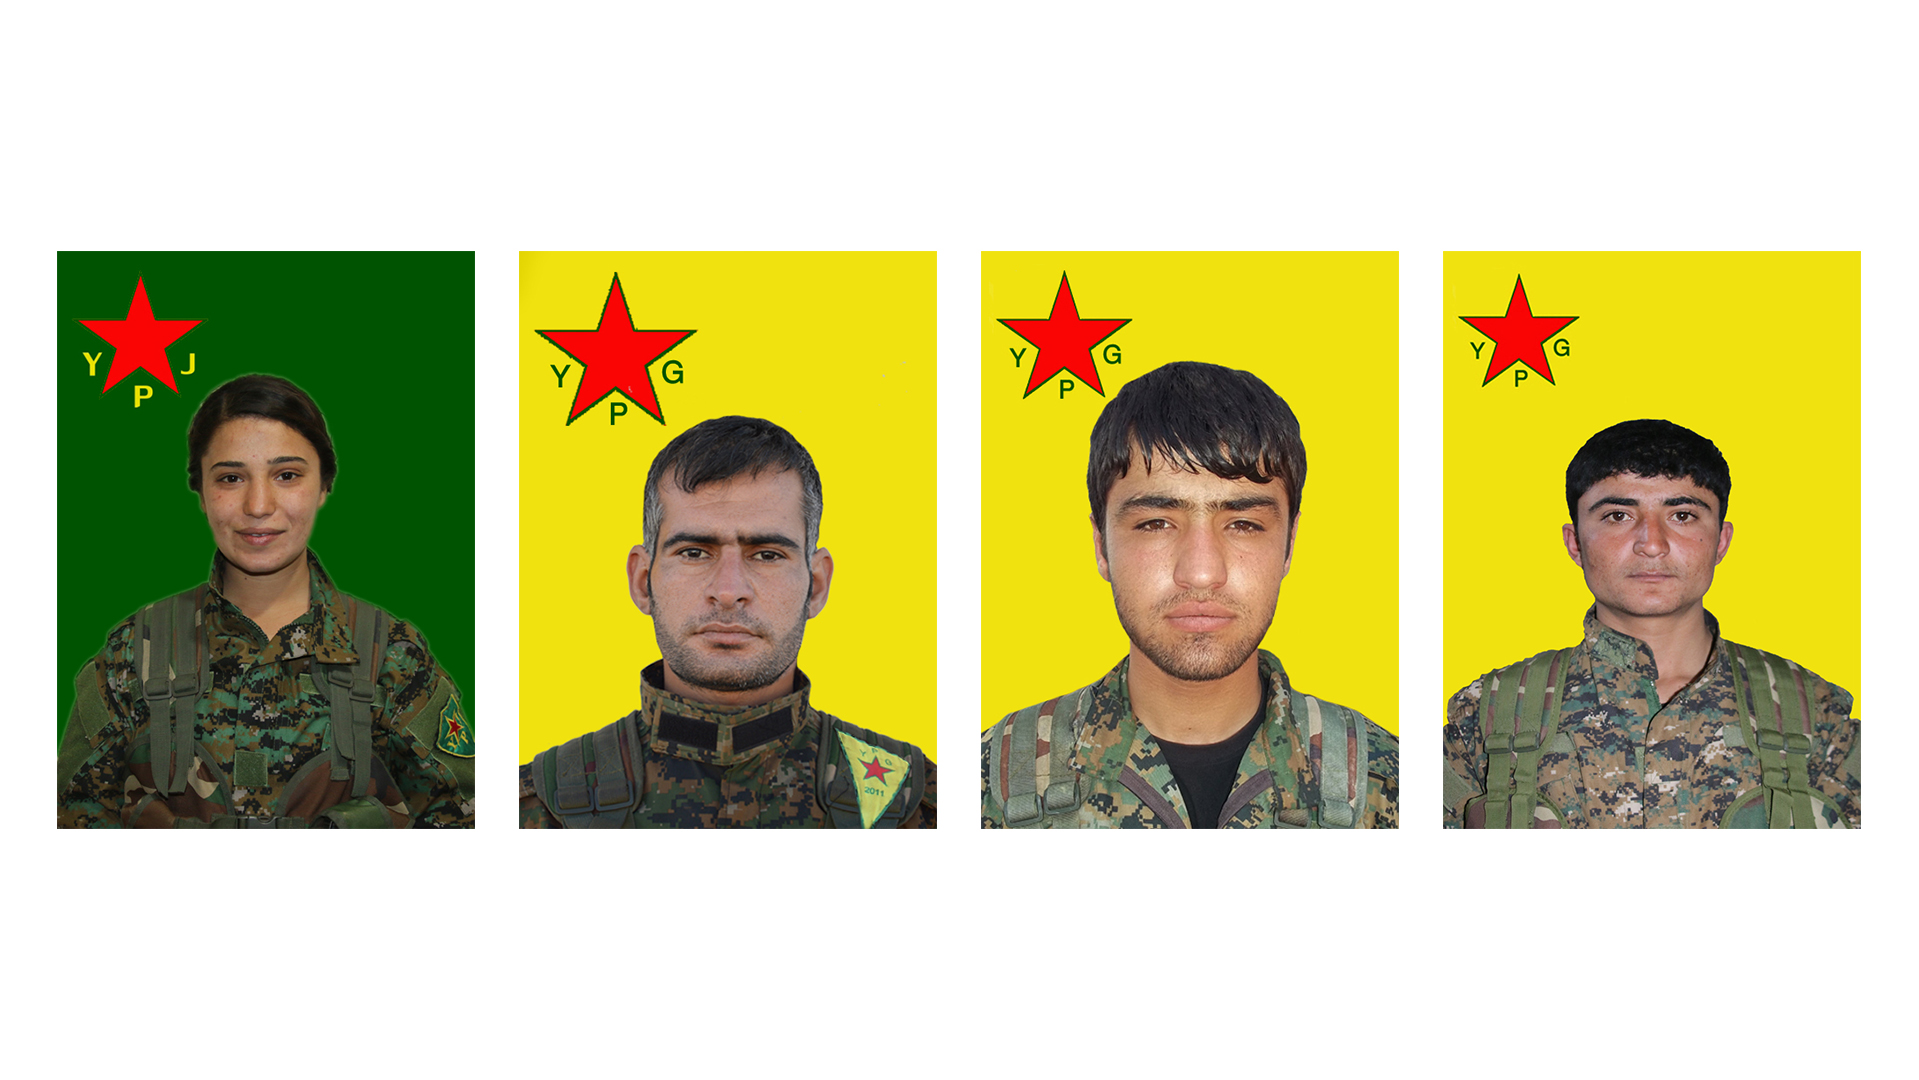 YPG reveals record of 4 fighters martyred in Serê Kaniyê, Afrin